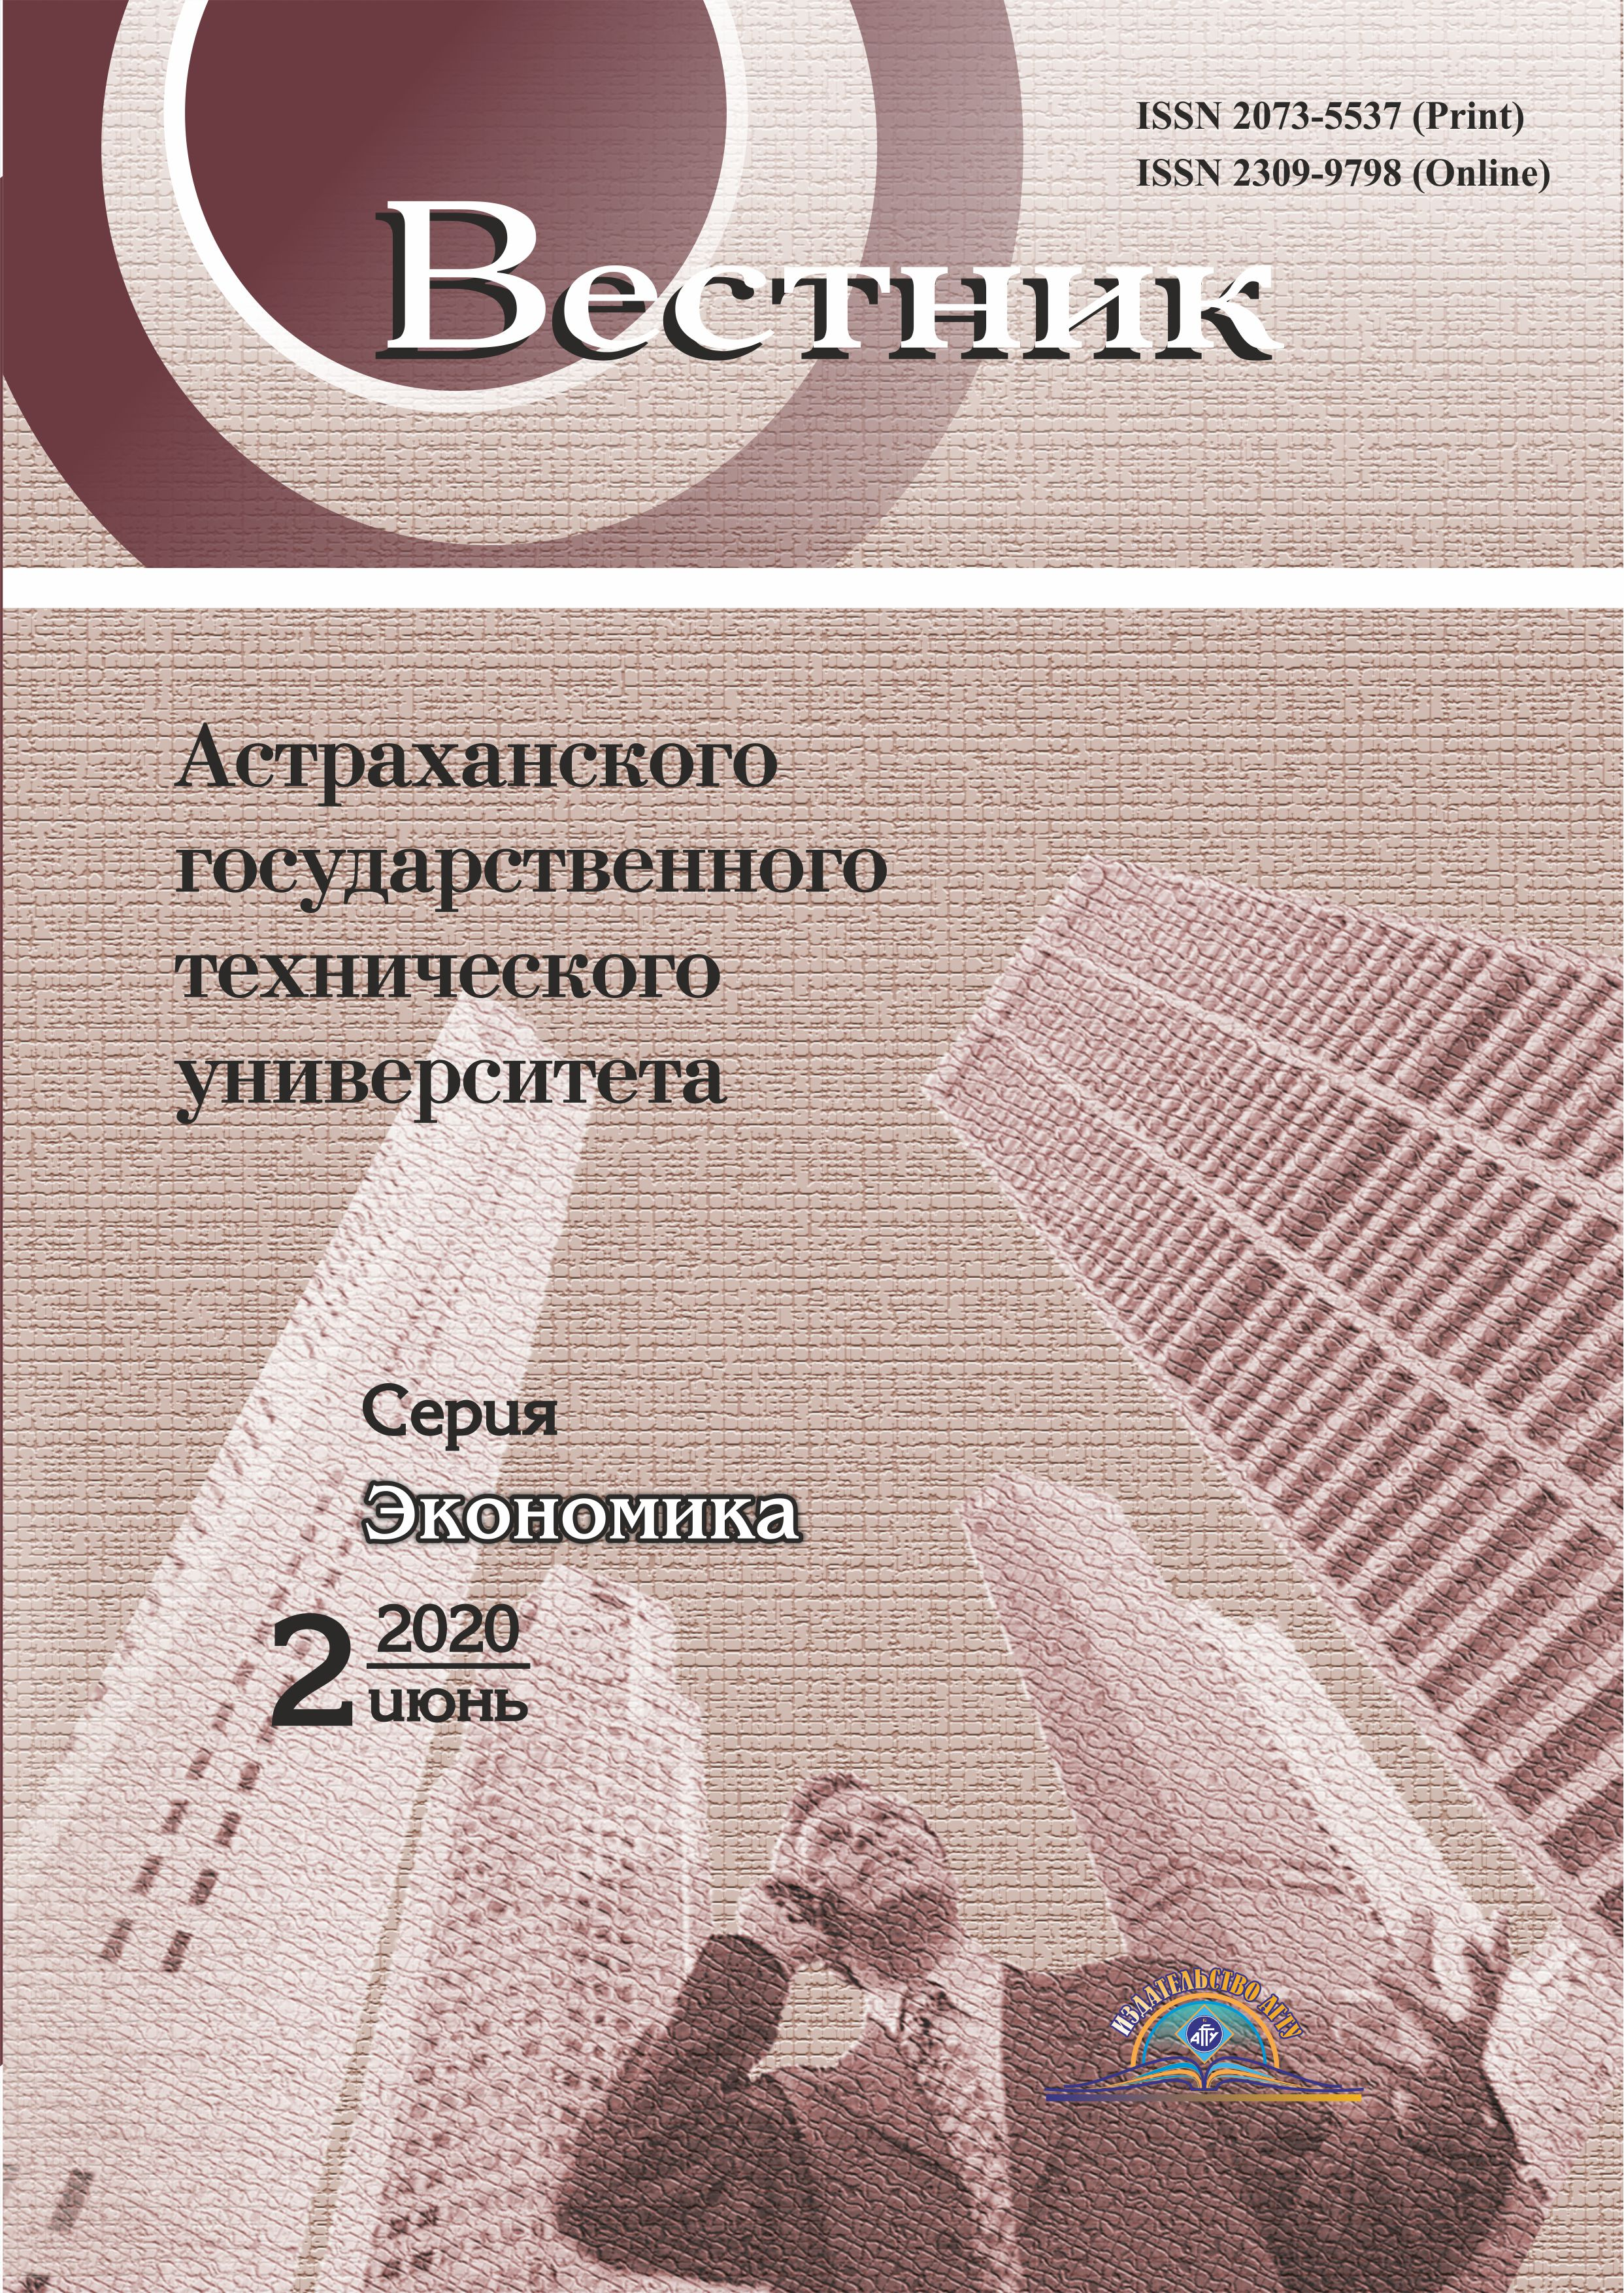 Possible development strategies of Russian companies in post-crisis period